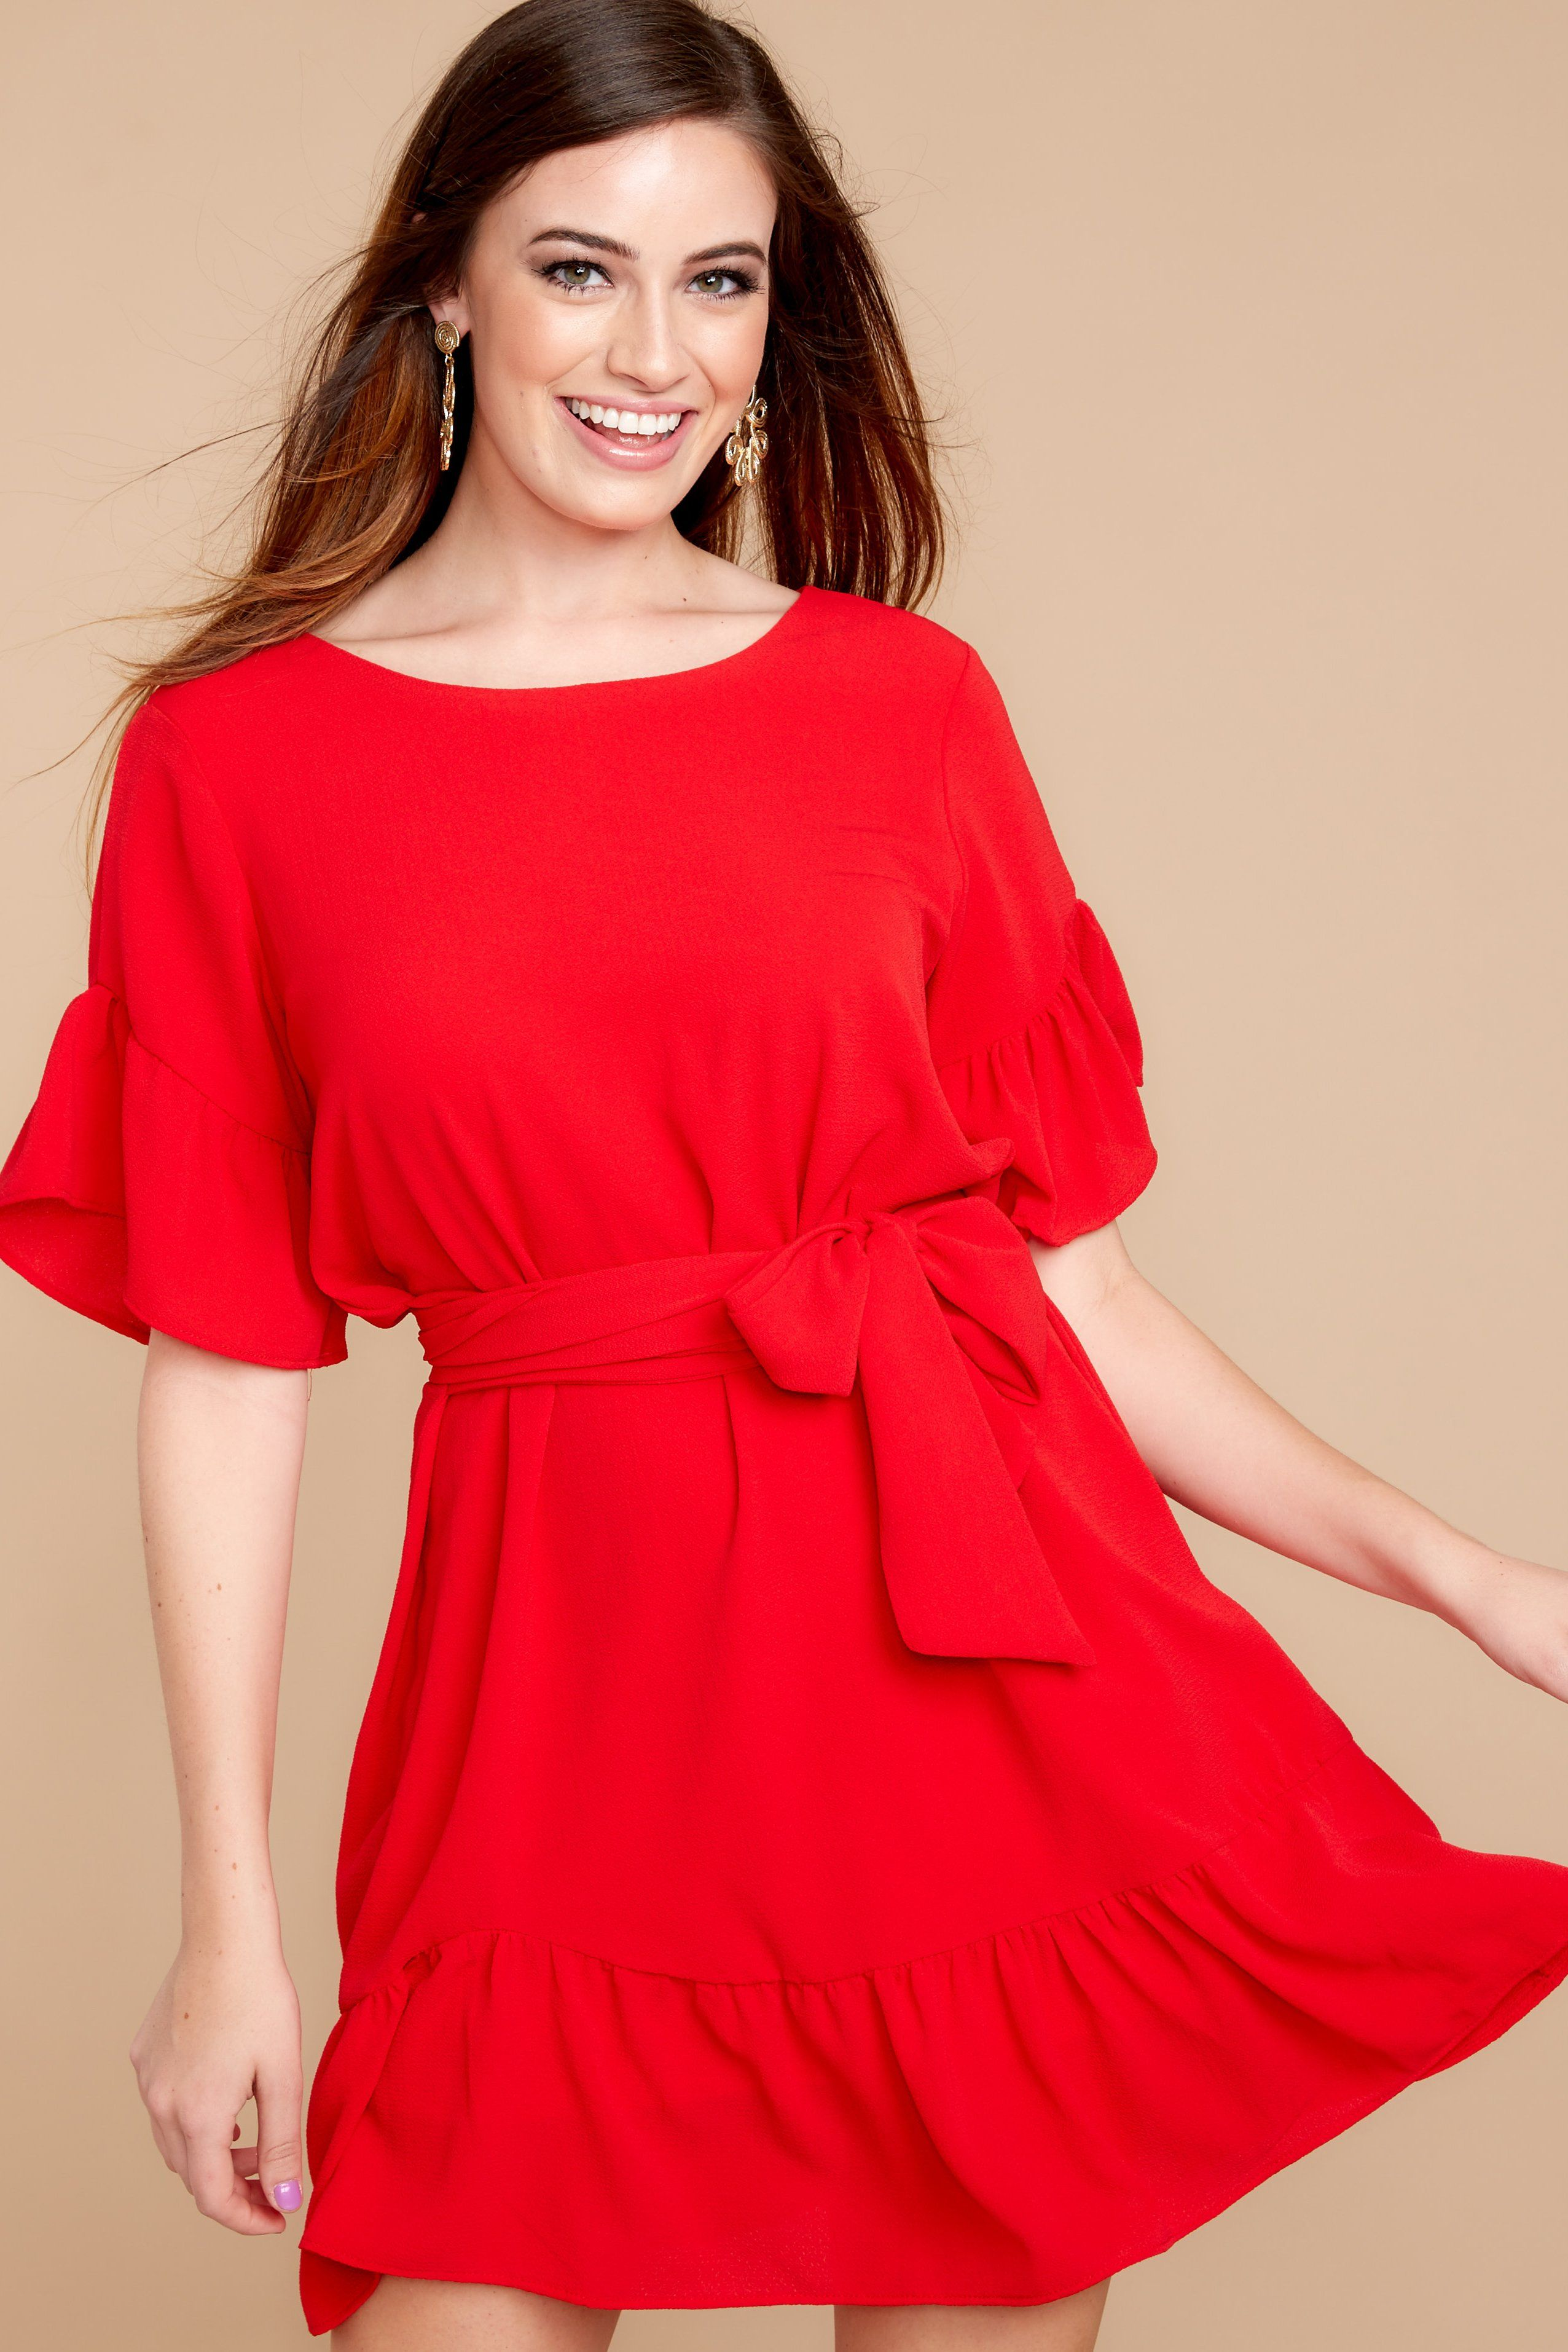 Chic red dress adorable red dress red dress boutique jpg 2552x3827 Adorable  classy dresses 56a003c2e